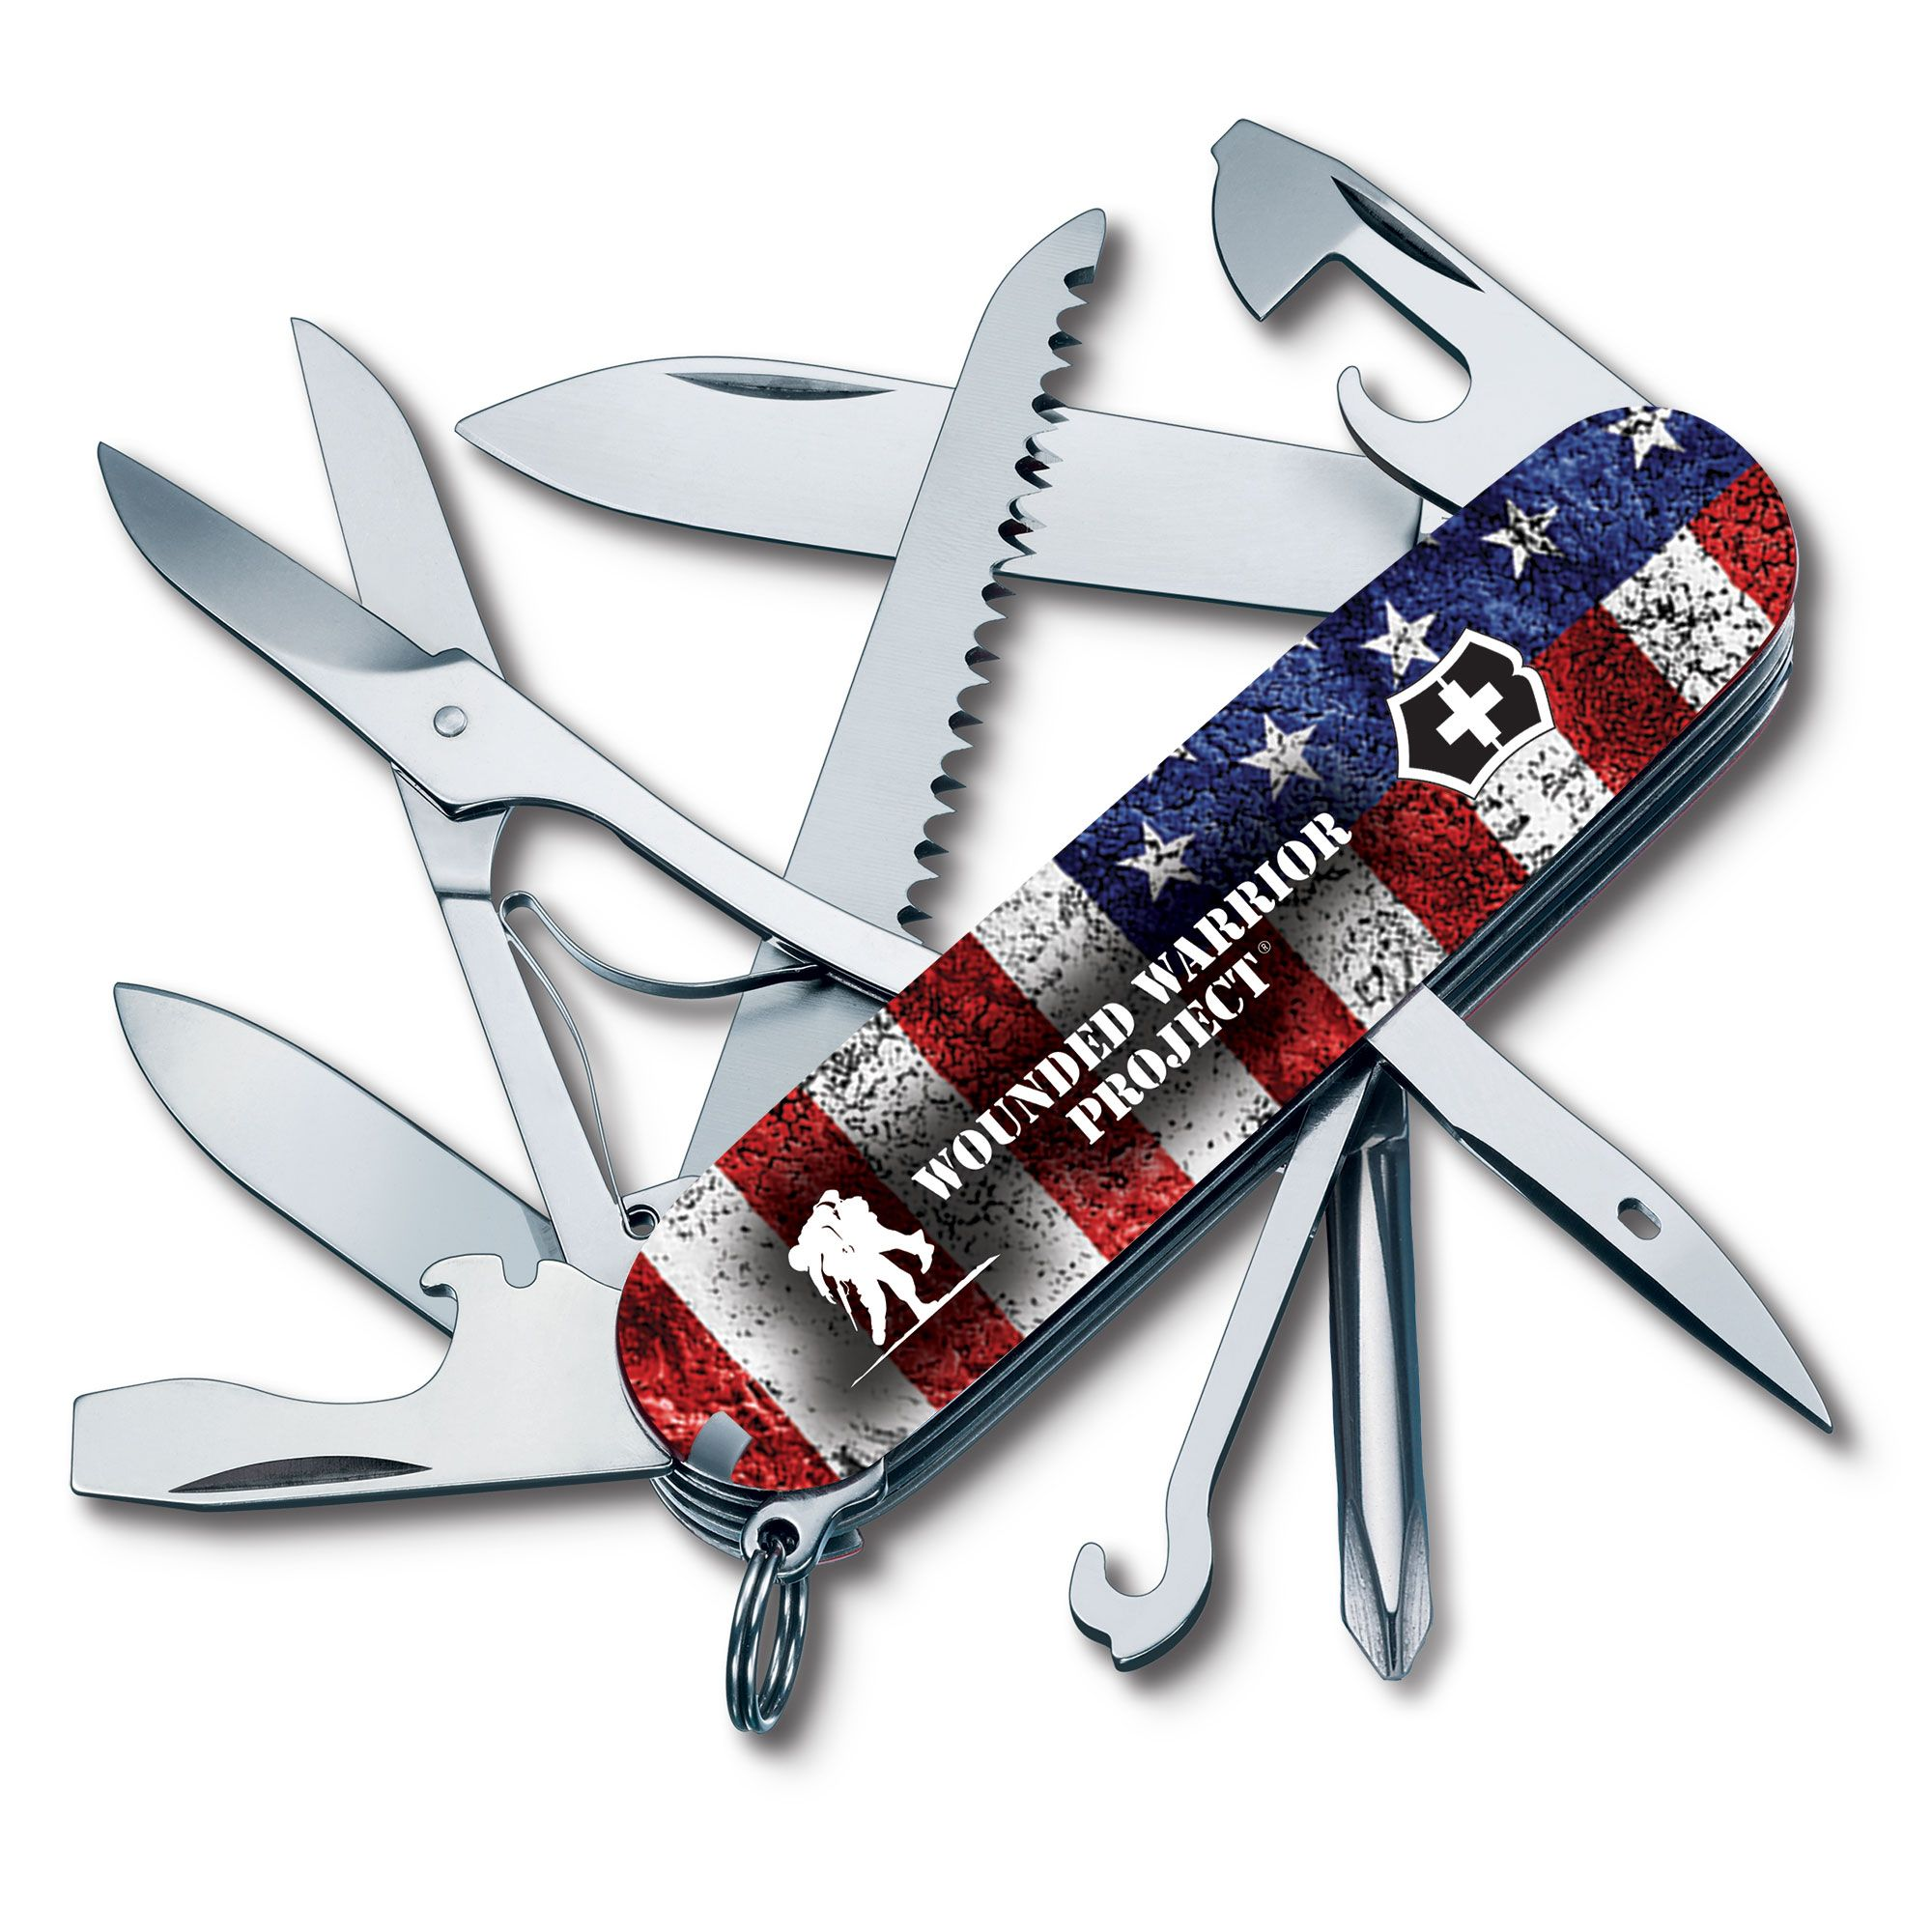 Victorinox Swiss Army Has Partnered With Wounded Warrior